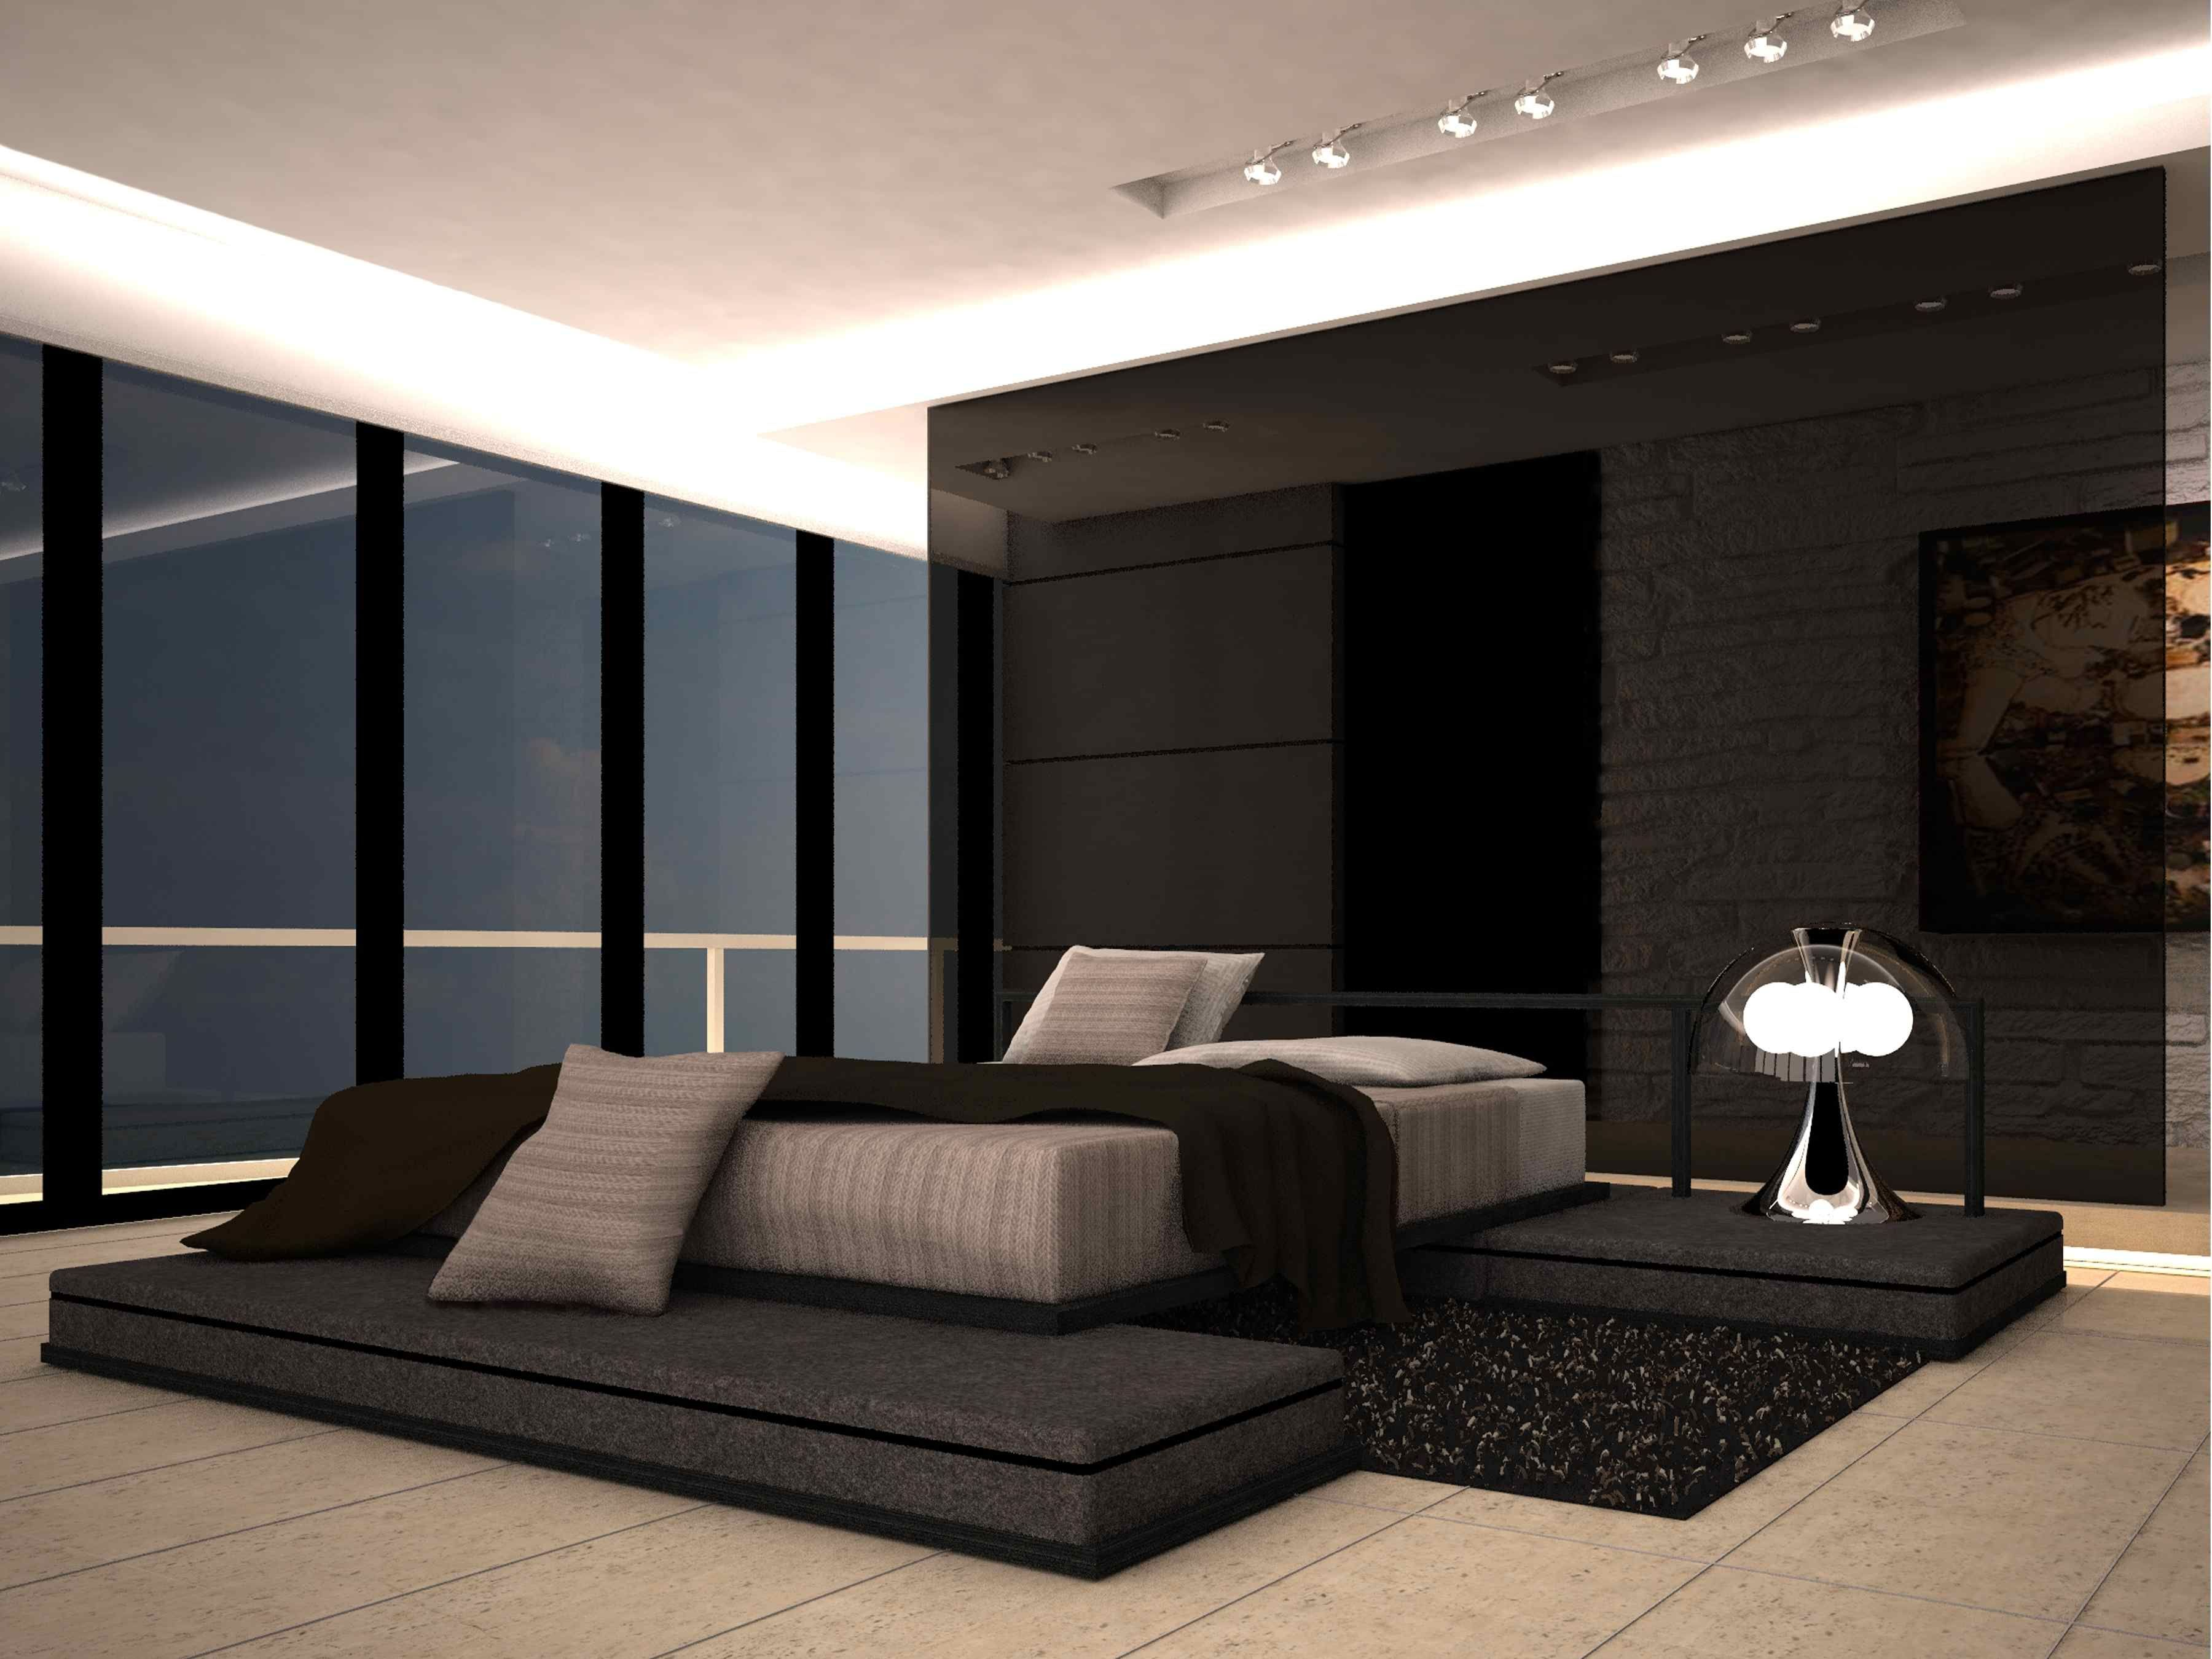 Great Ideas Of New Romantic Beautiful Modern Master Bedrooms For Visit Bdarop Com Master Bedroom Layout Futuristic Bedroom Modern Bedroom Design